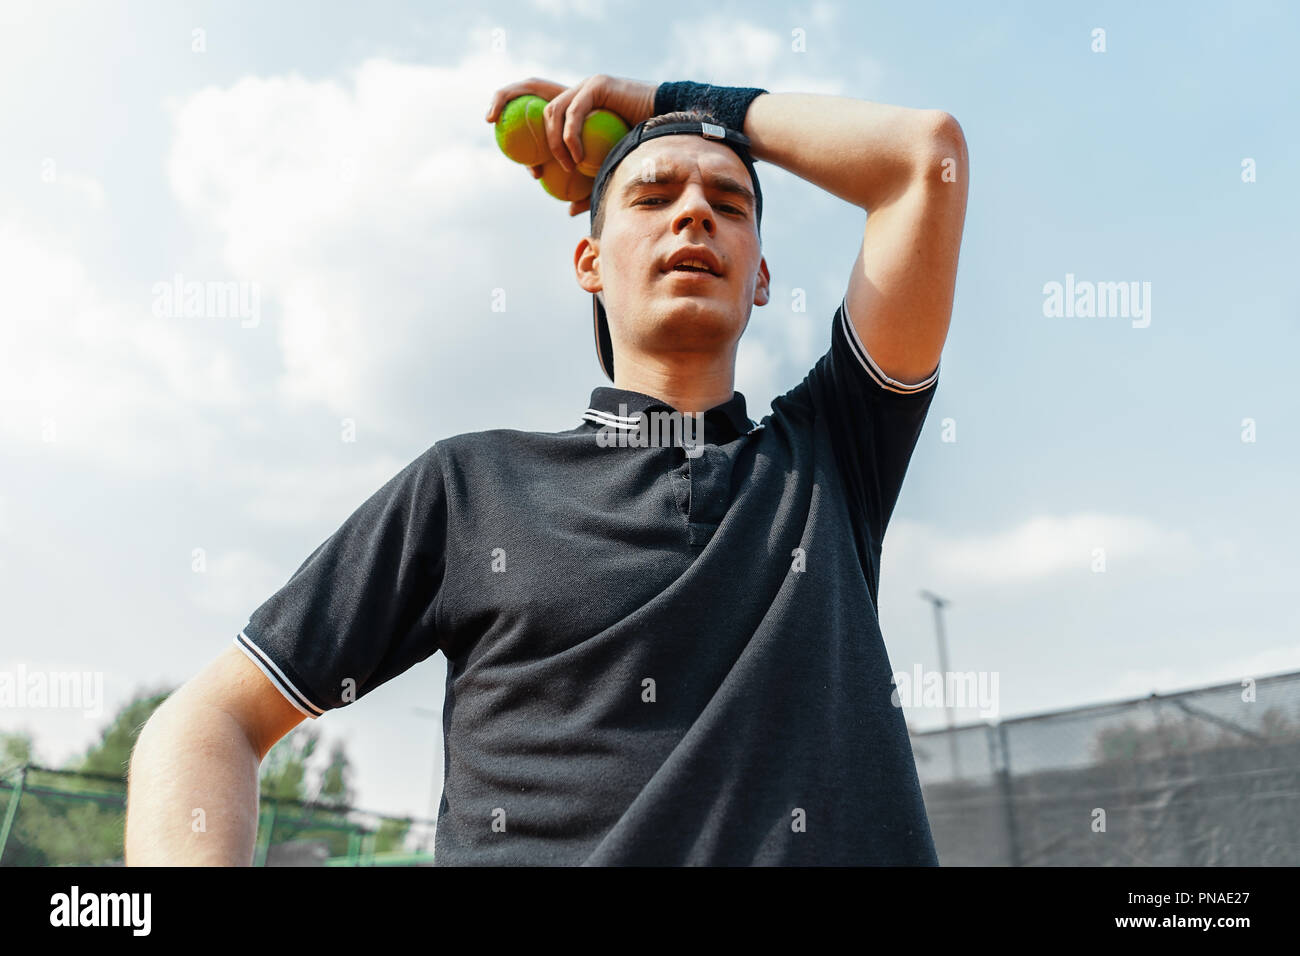 Close up of young attractive man relaxing after tournament and holding tennis balls. Bottom view. Player looking at camera. - Stock Image